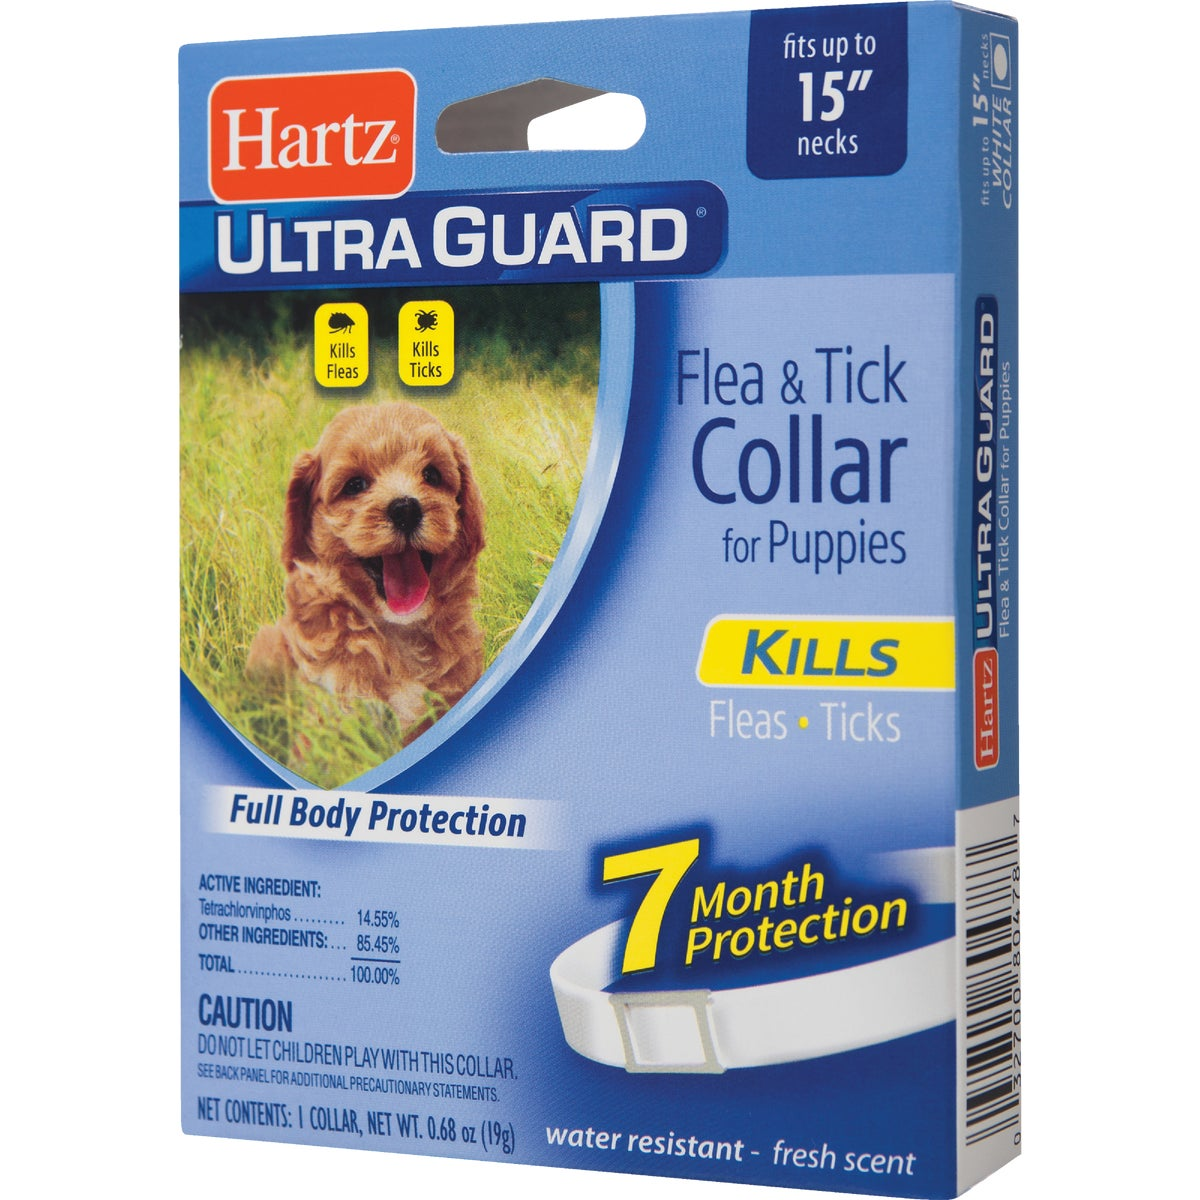 PUPPY F&T COLLAR - 80478 by Hartz Mountain Corp